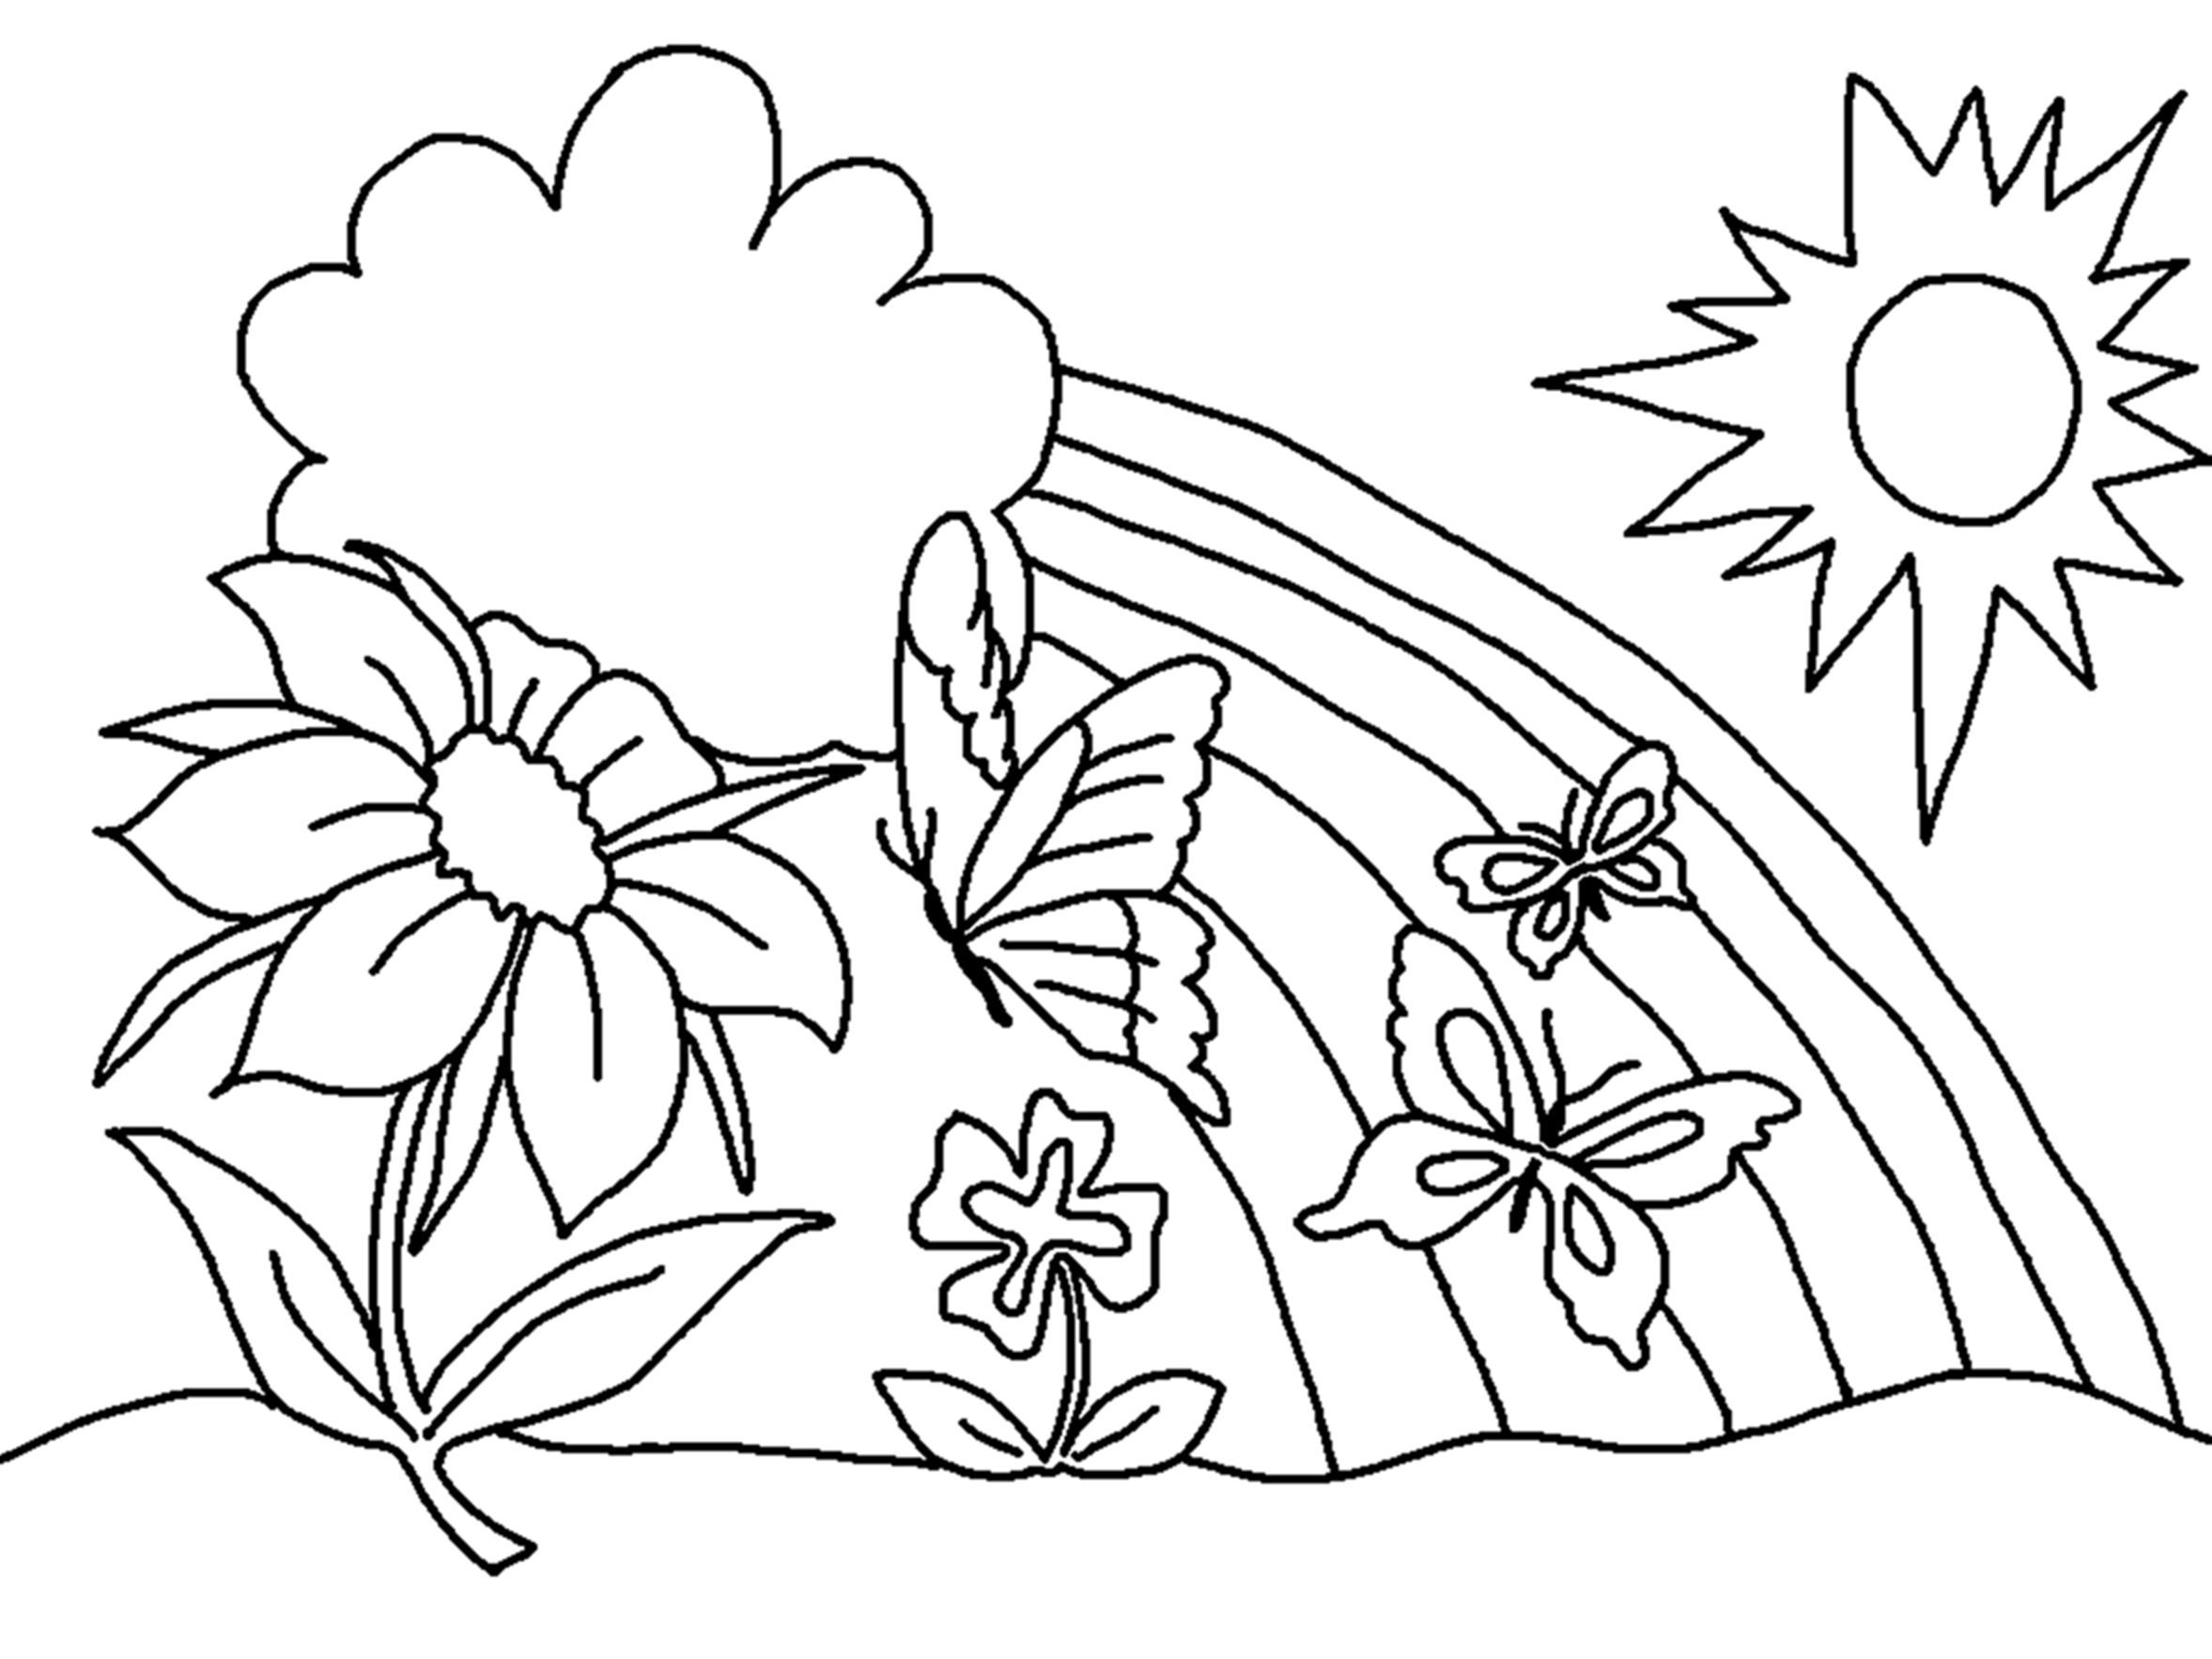 flower coloring pages kids - photo#8